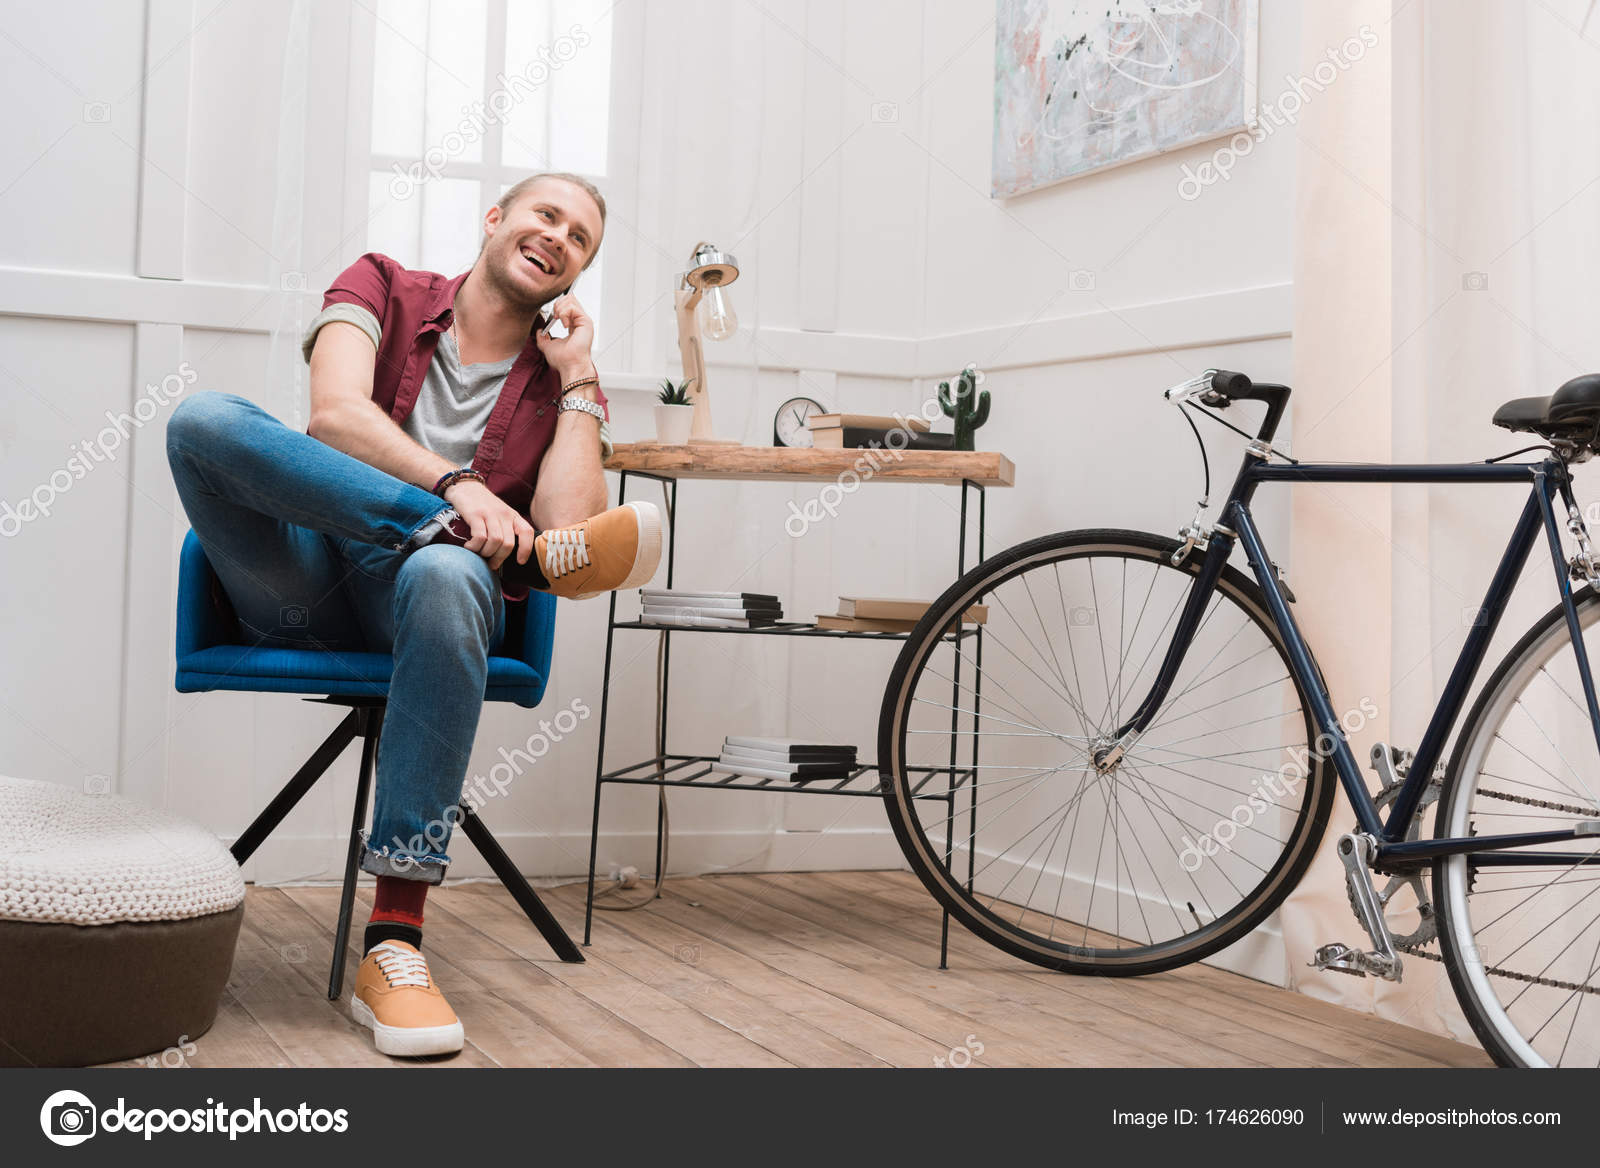 Chair Bike Smiling Man Talking Smartphone While Sitting Chair Home Bike